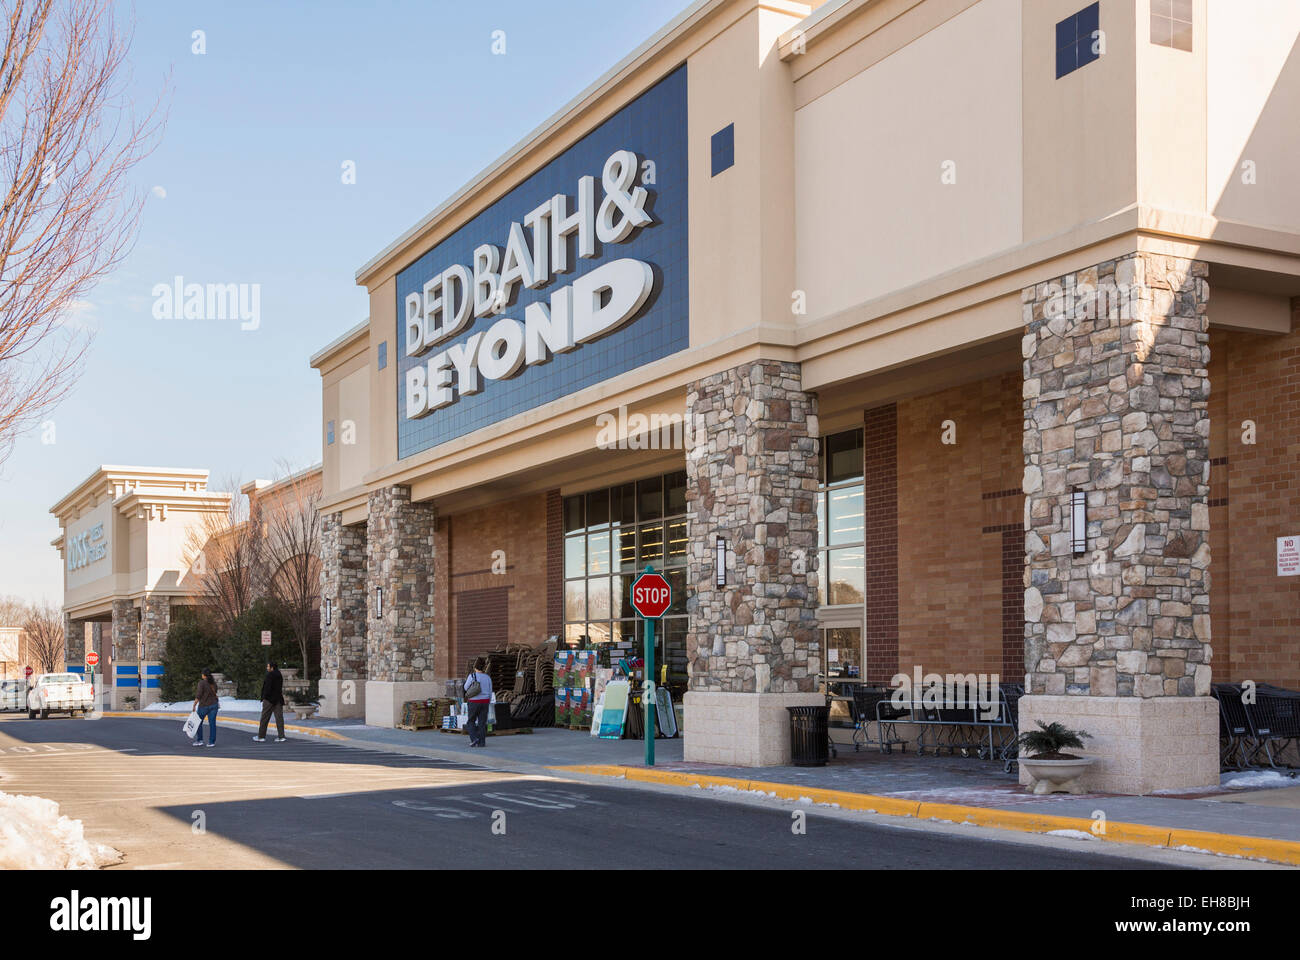 bed bath and beyond store superstore in gainesville virginia usa stock photo royalty free. Black Bedroom Furniture Sets. Home Design Ideas